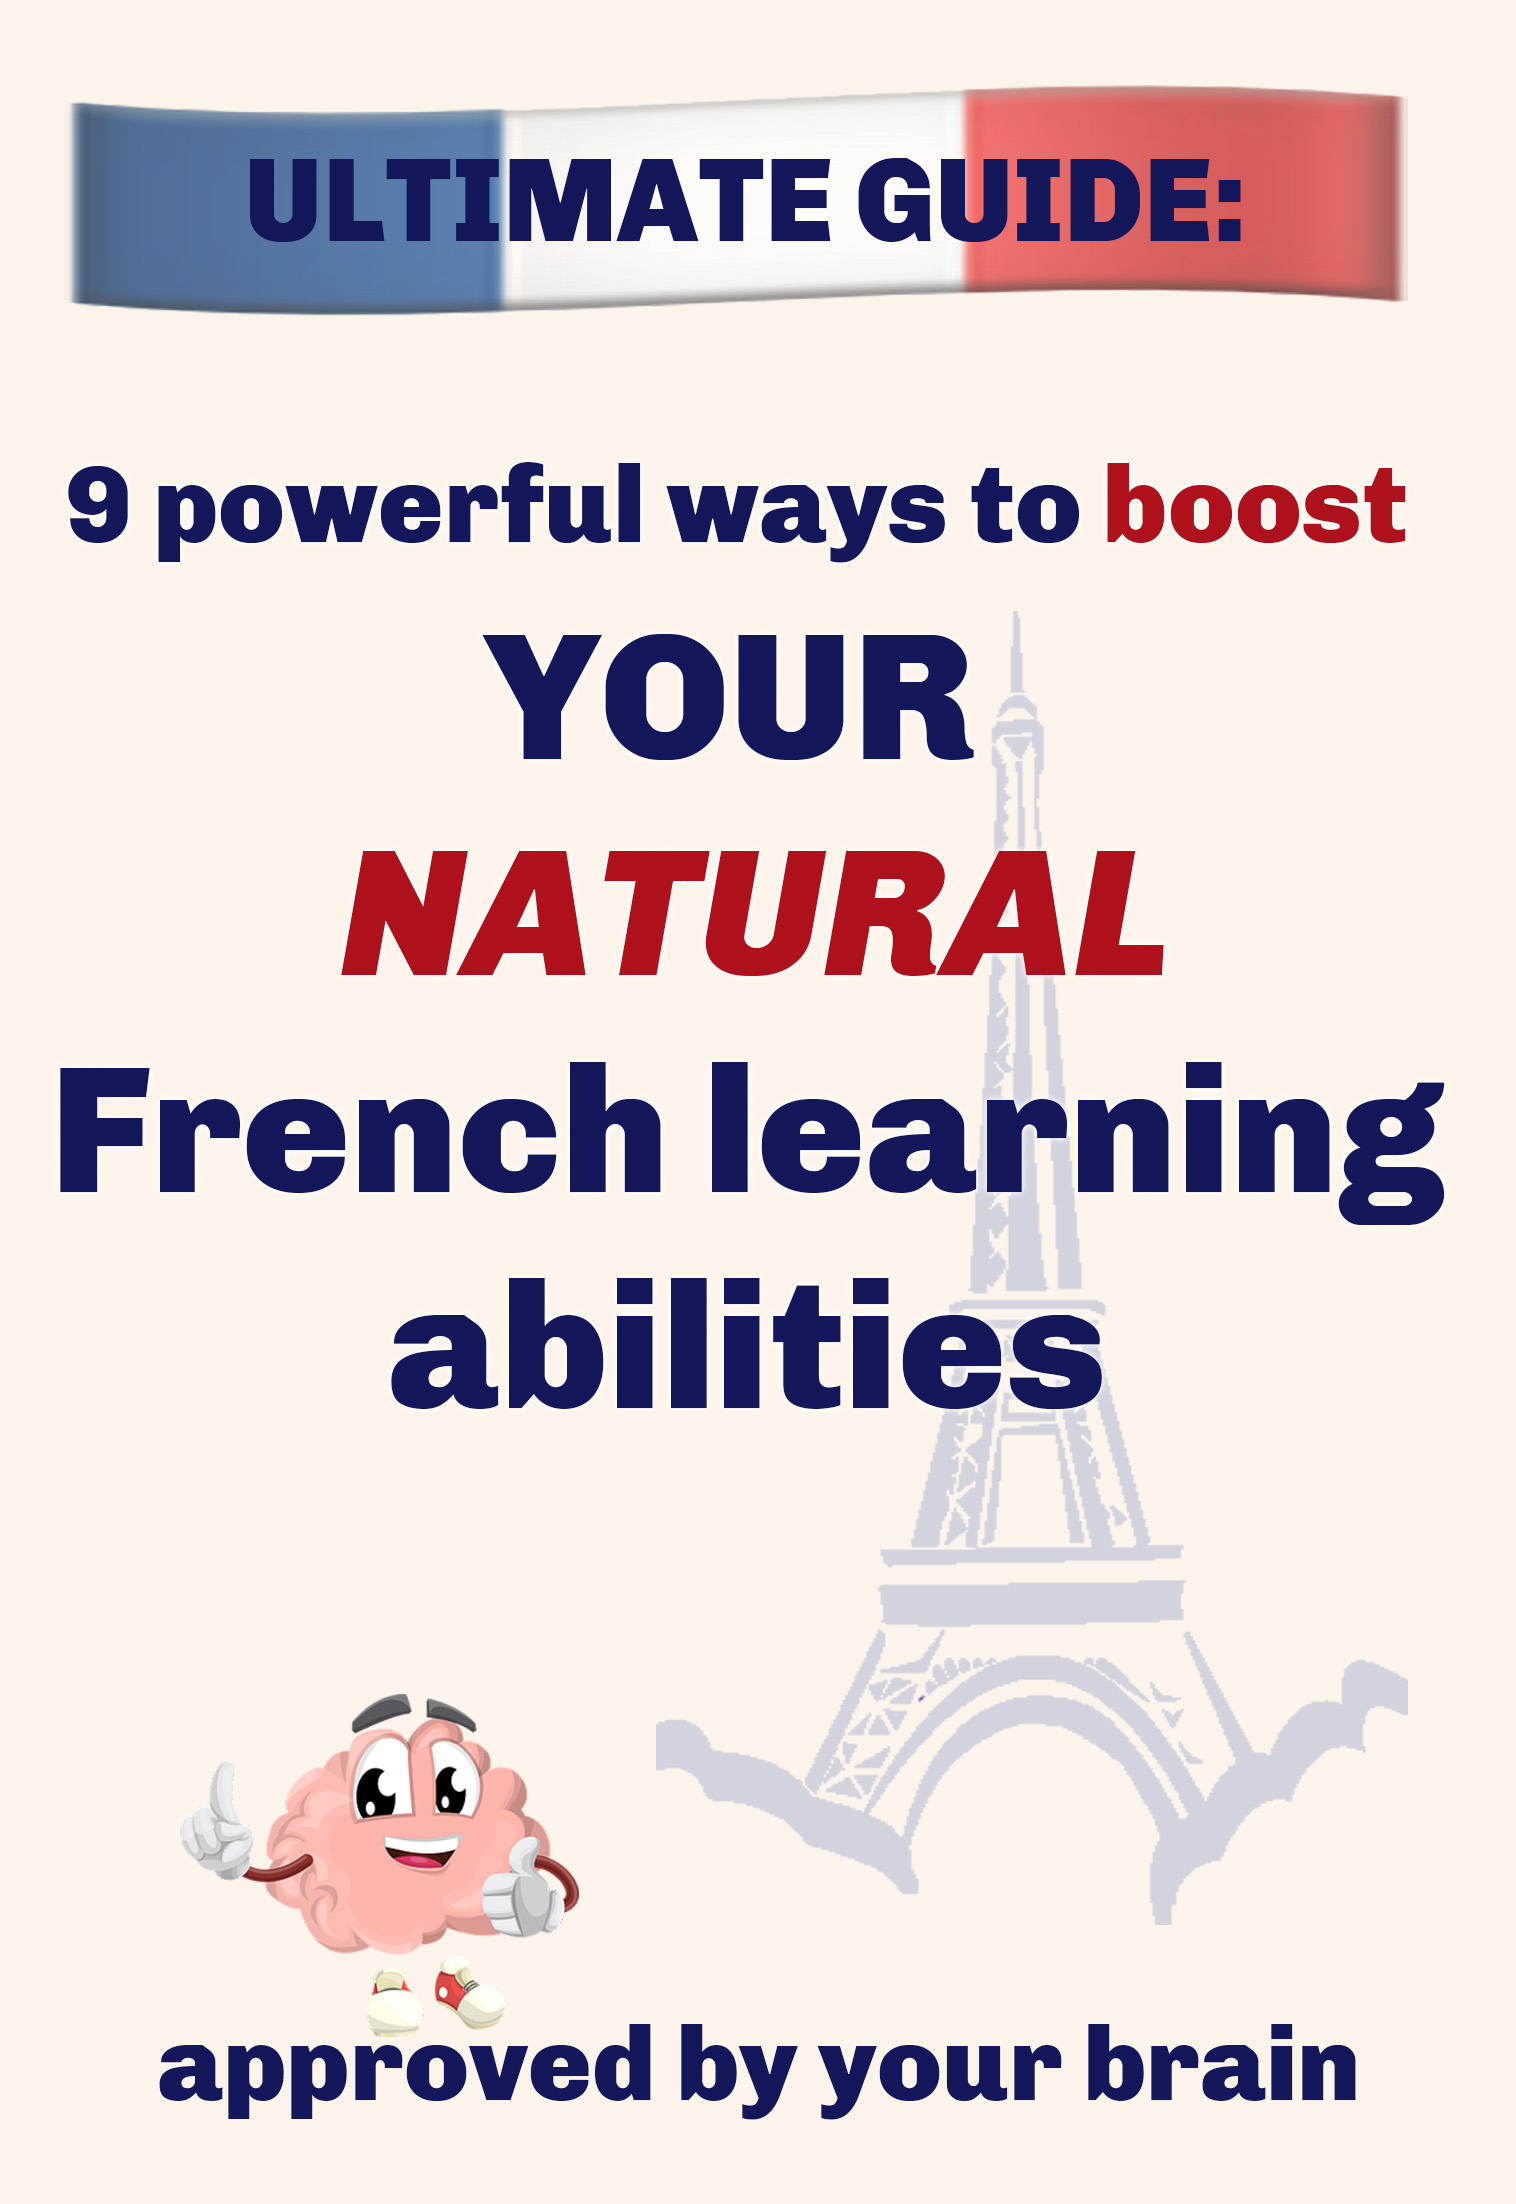 How to learn French naturally